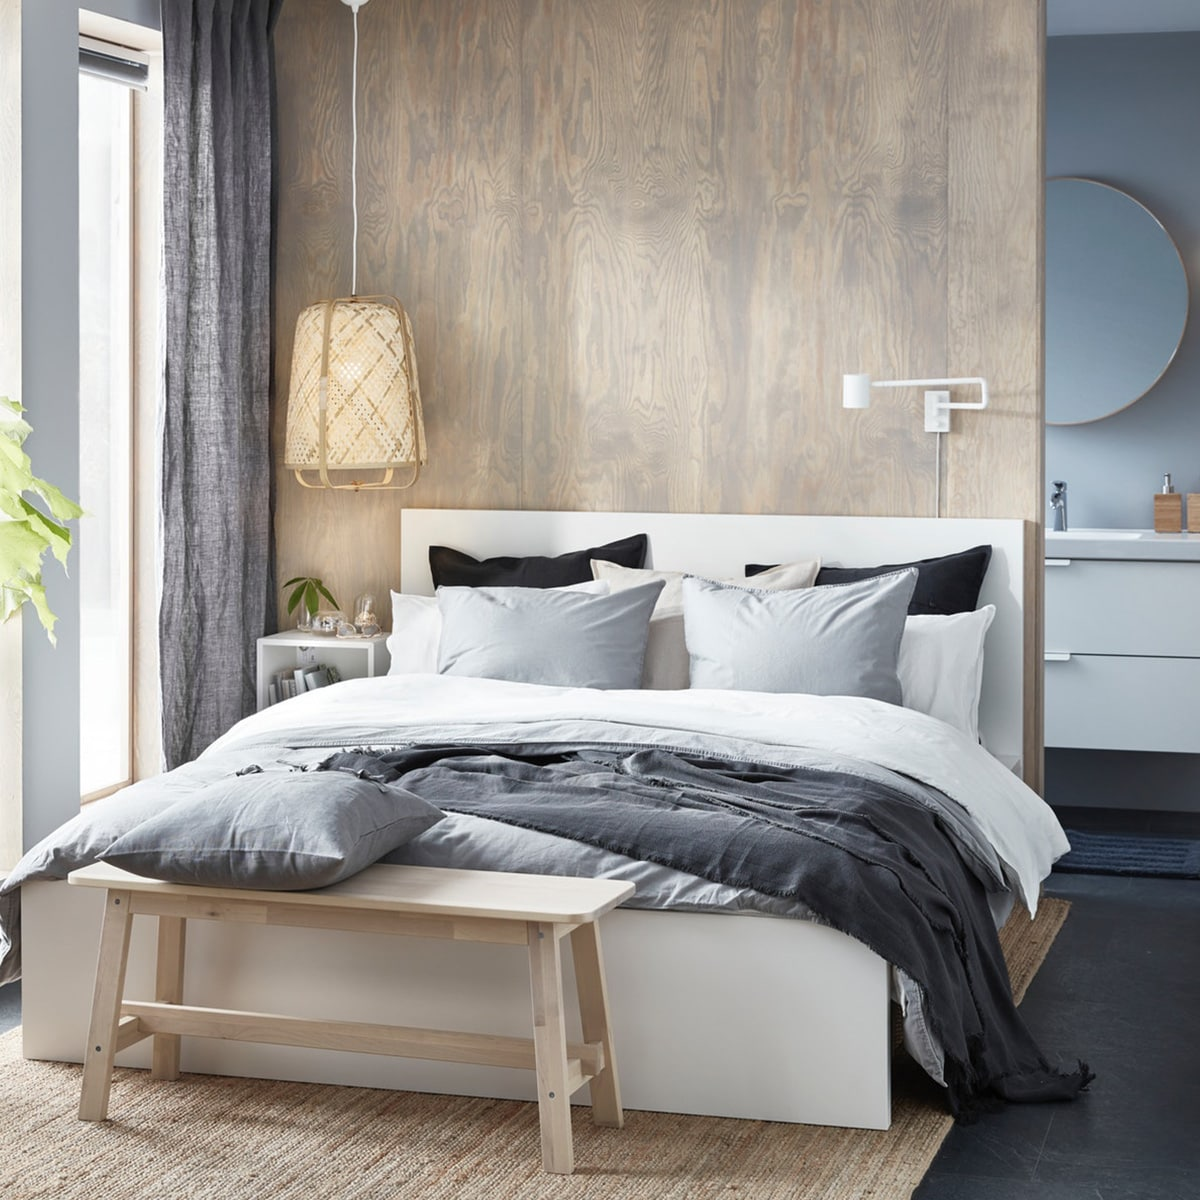 An IKEA MALM high white bed frame, with white and grey bedding in a small bedroom with wood accents.